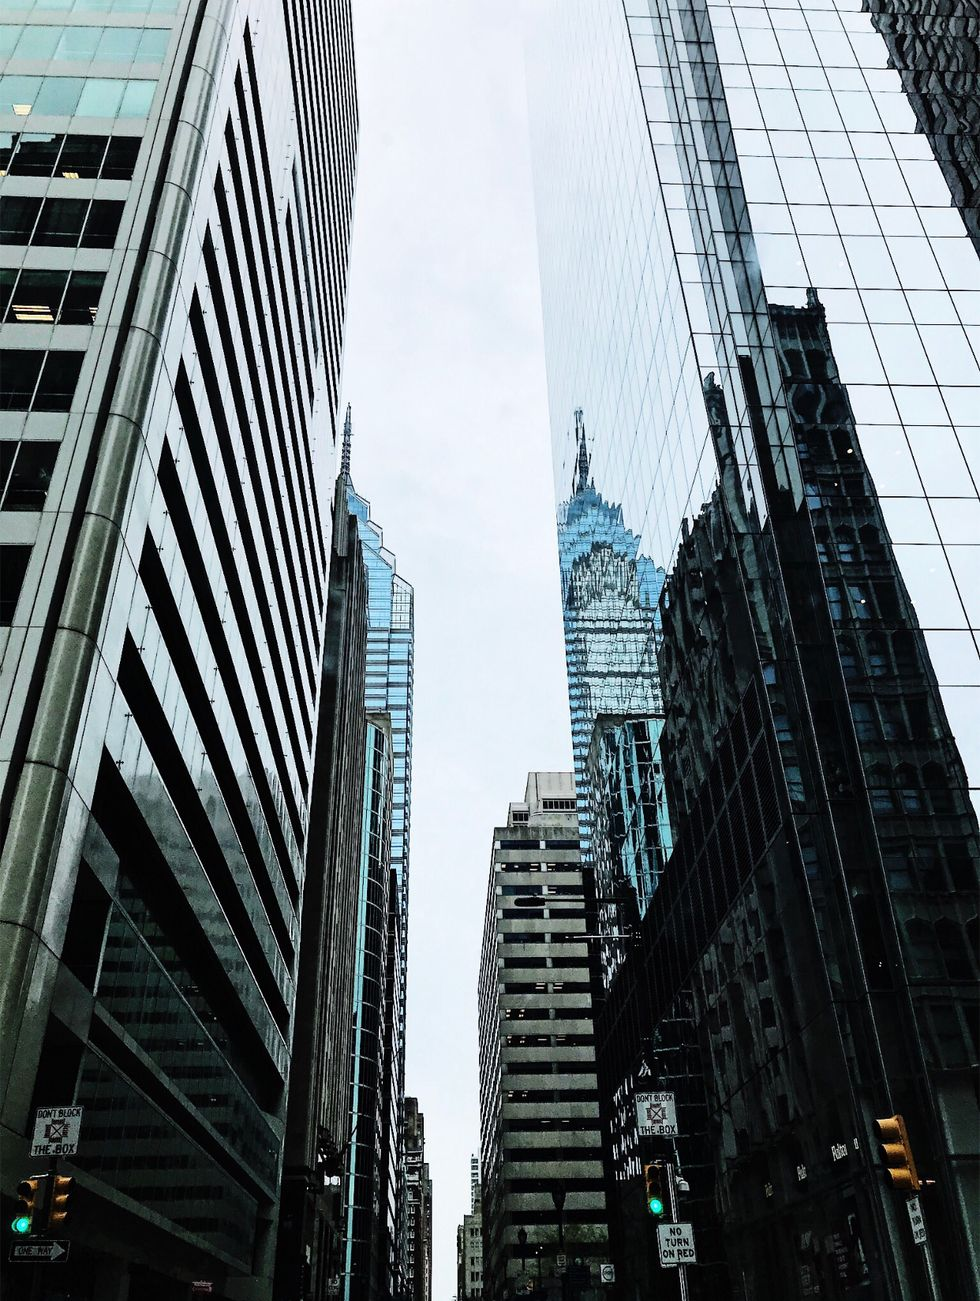 50 Things Only Philadelphia Residents Will Understand